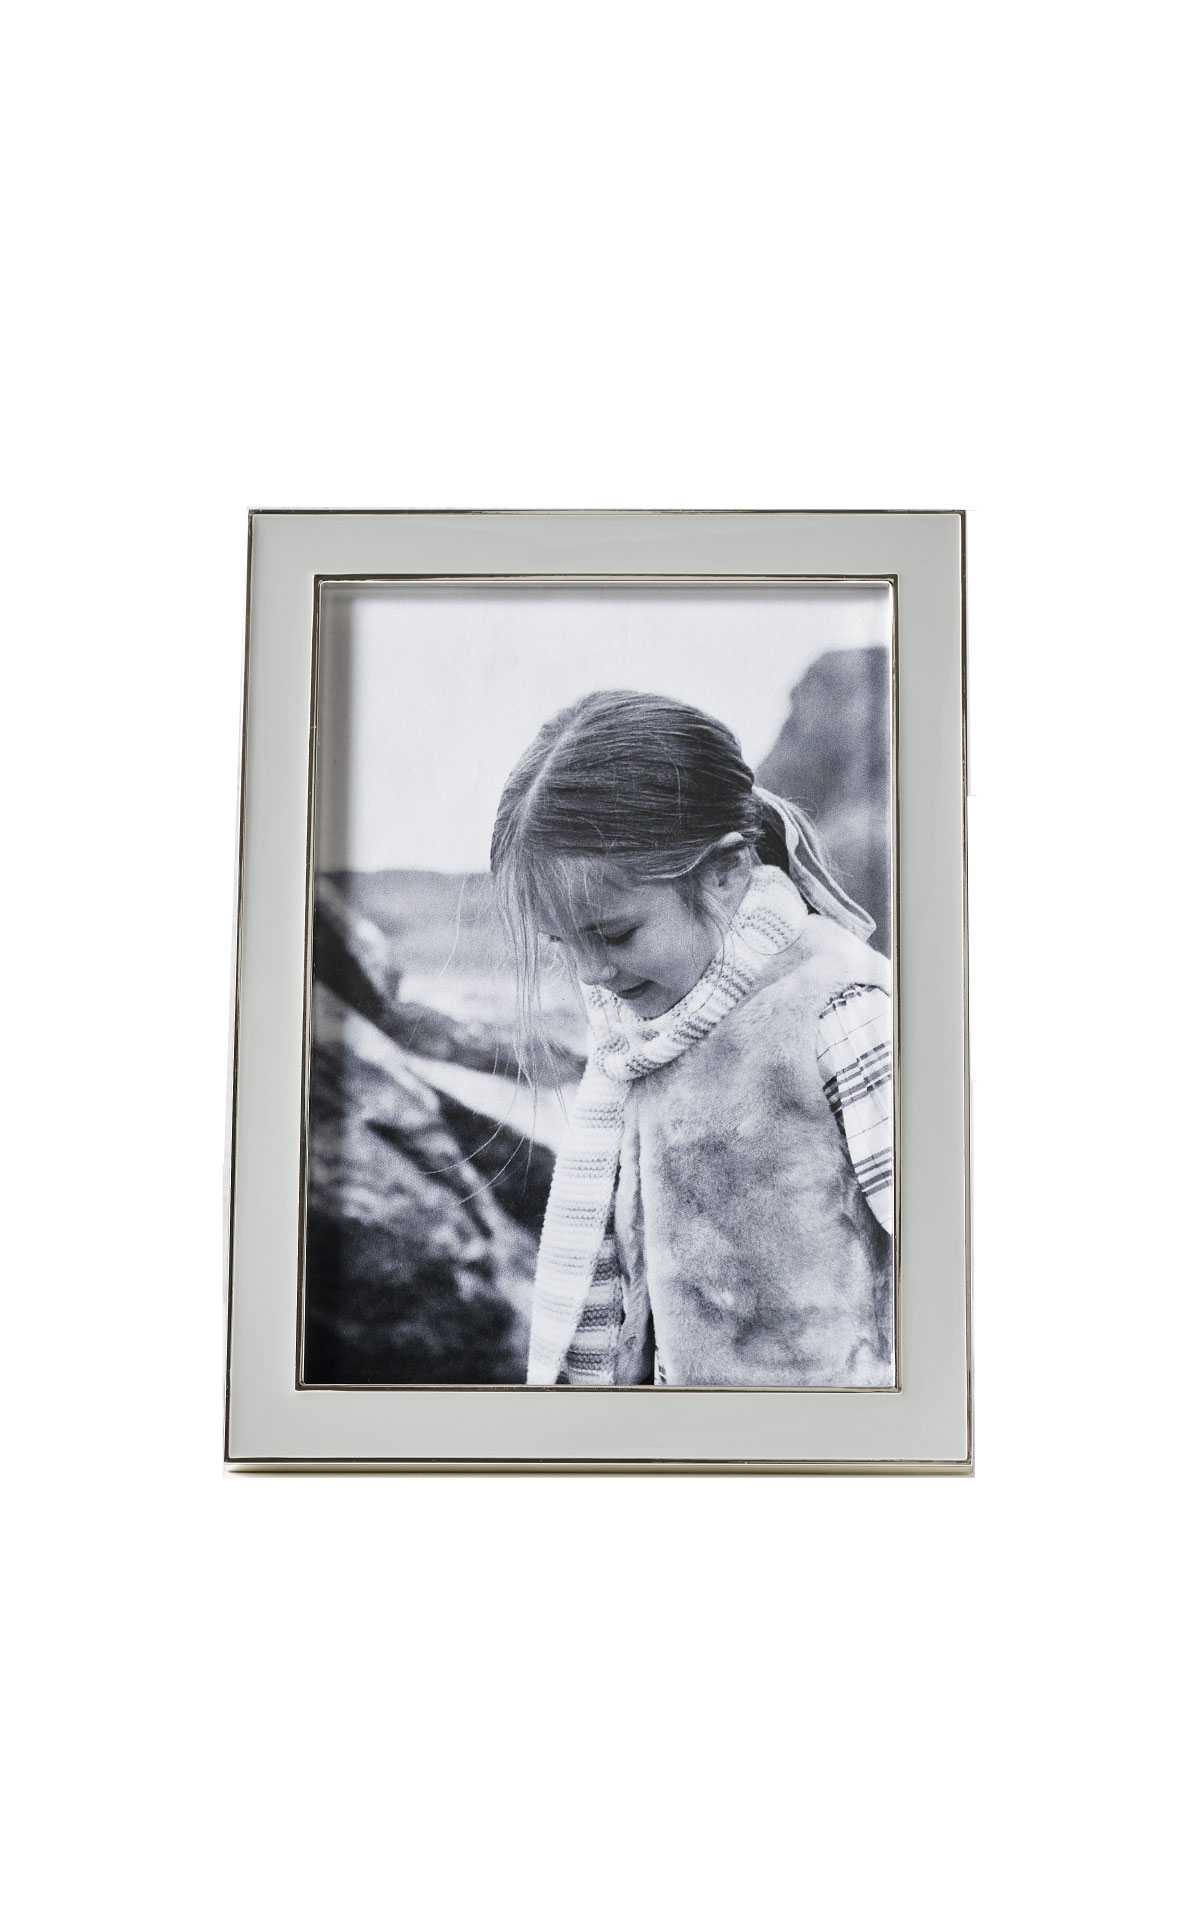 The White Company Grey resin 5x7 photo frame from Bicester Village